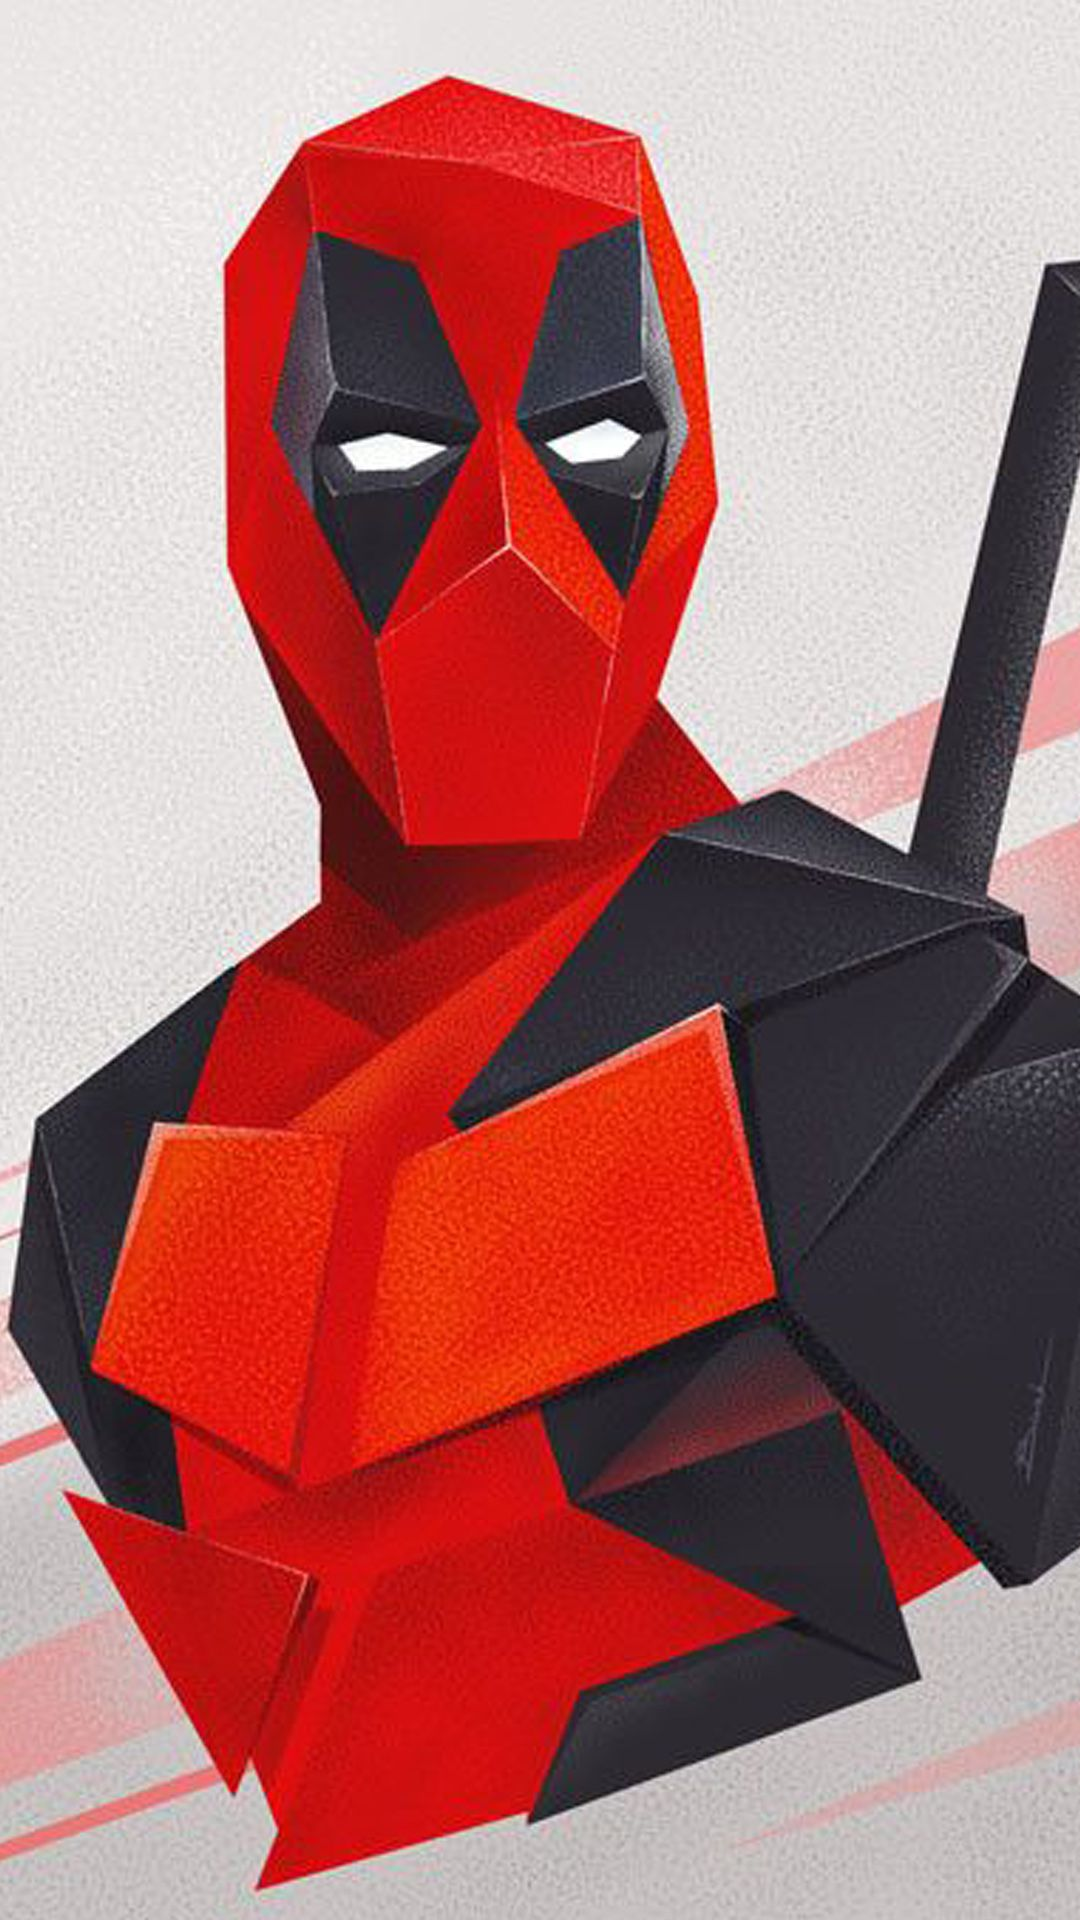 Cool Deadpool hd phone wallpapers Free Quality Wallpaper